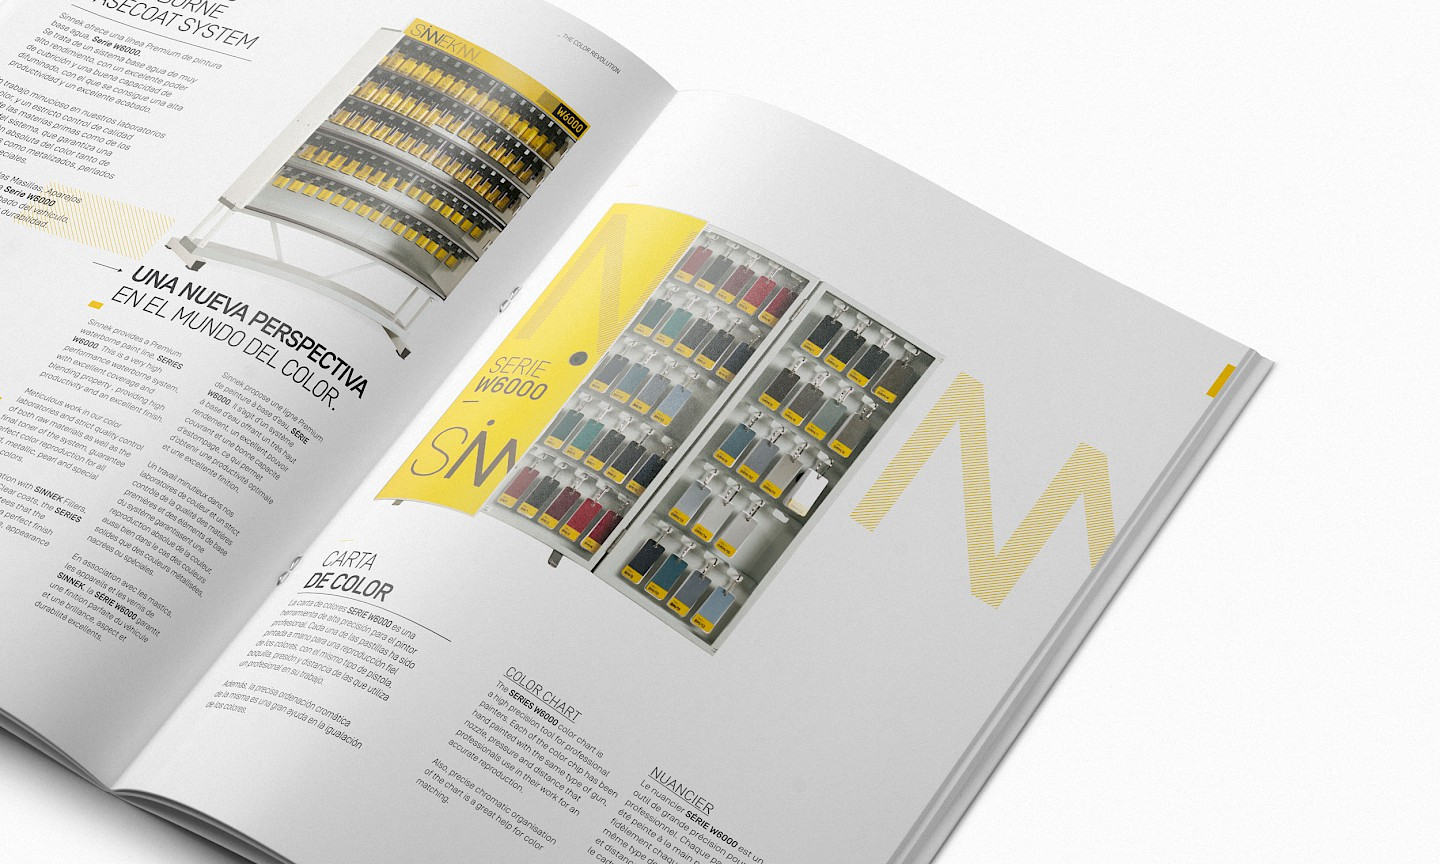 catalogo03 move branding sinnek